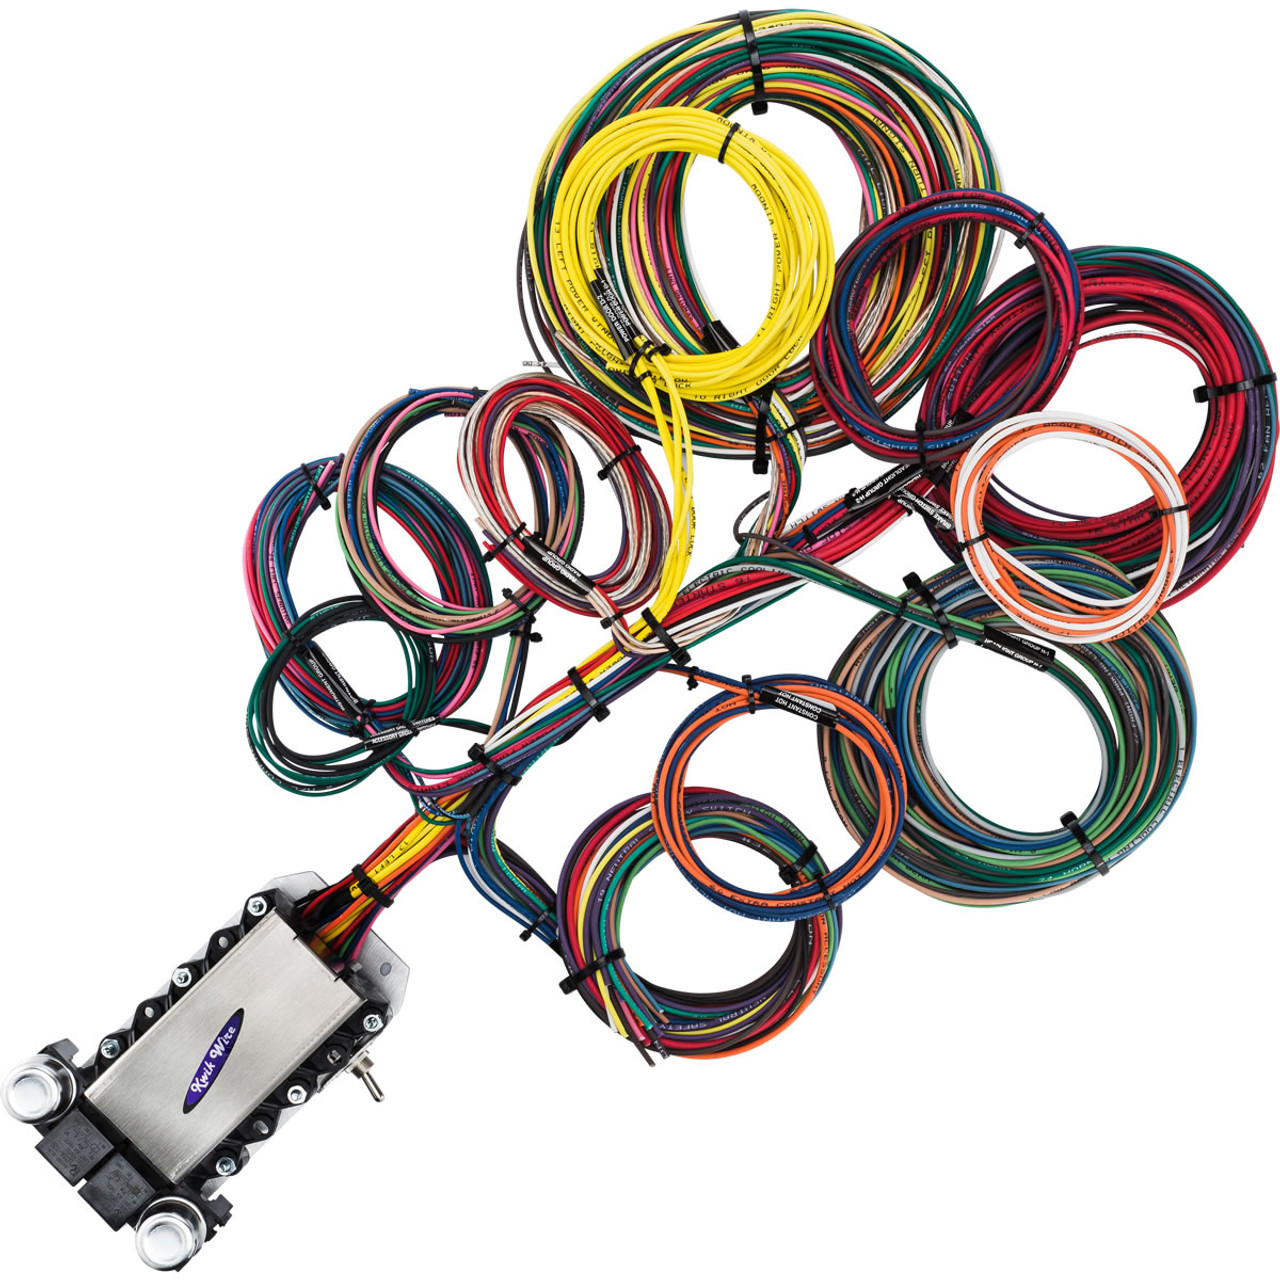 hight resolution of 22 circuit wire harness kwikwire com electrify your ride wire harness instructions wire harness instruction